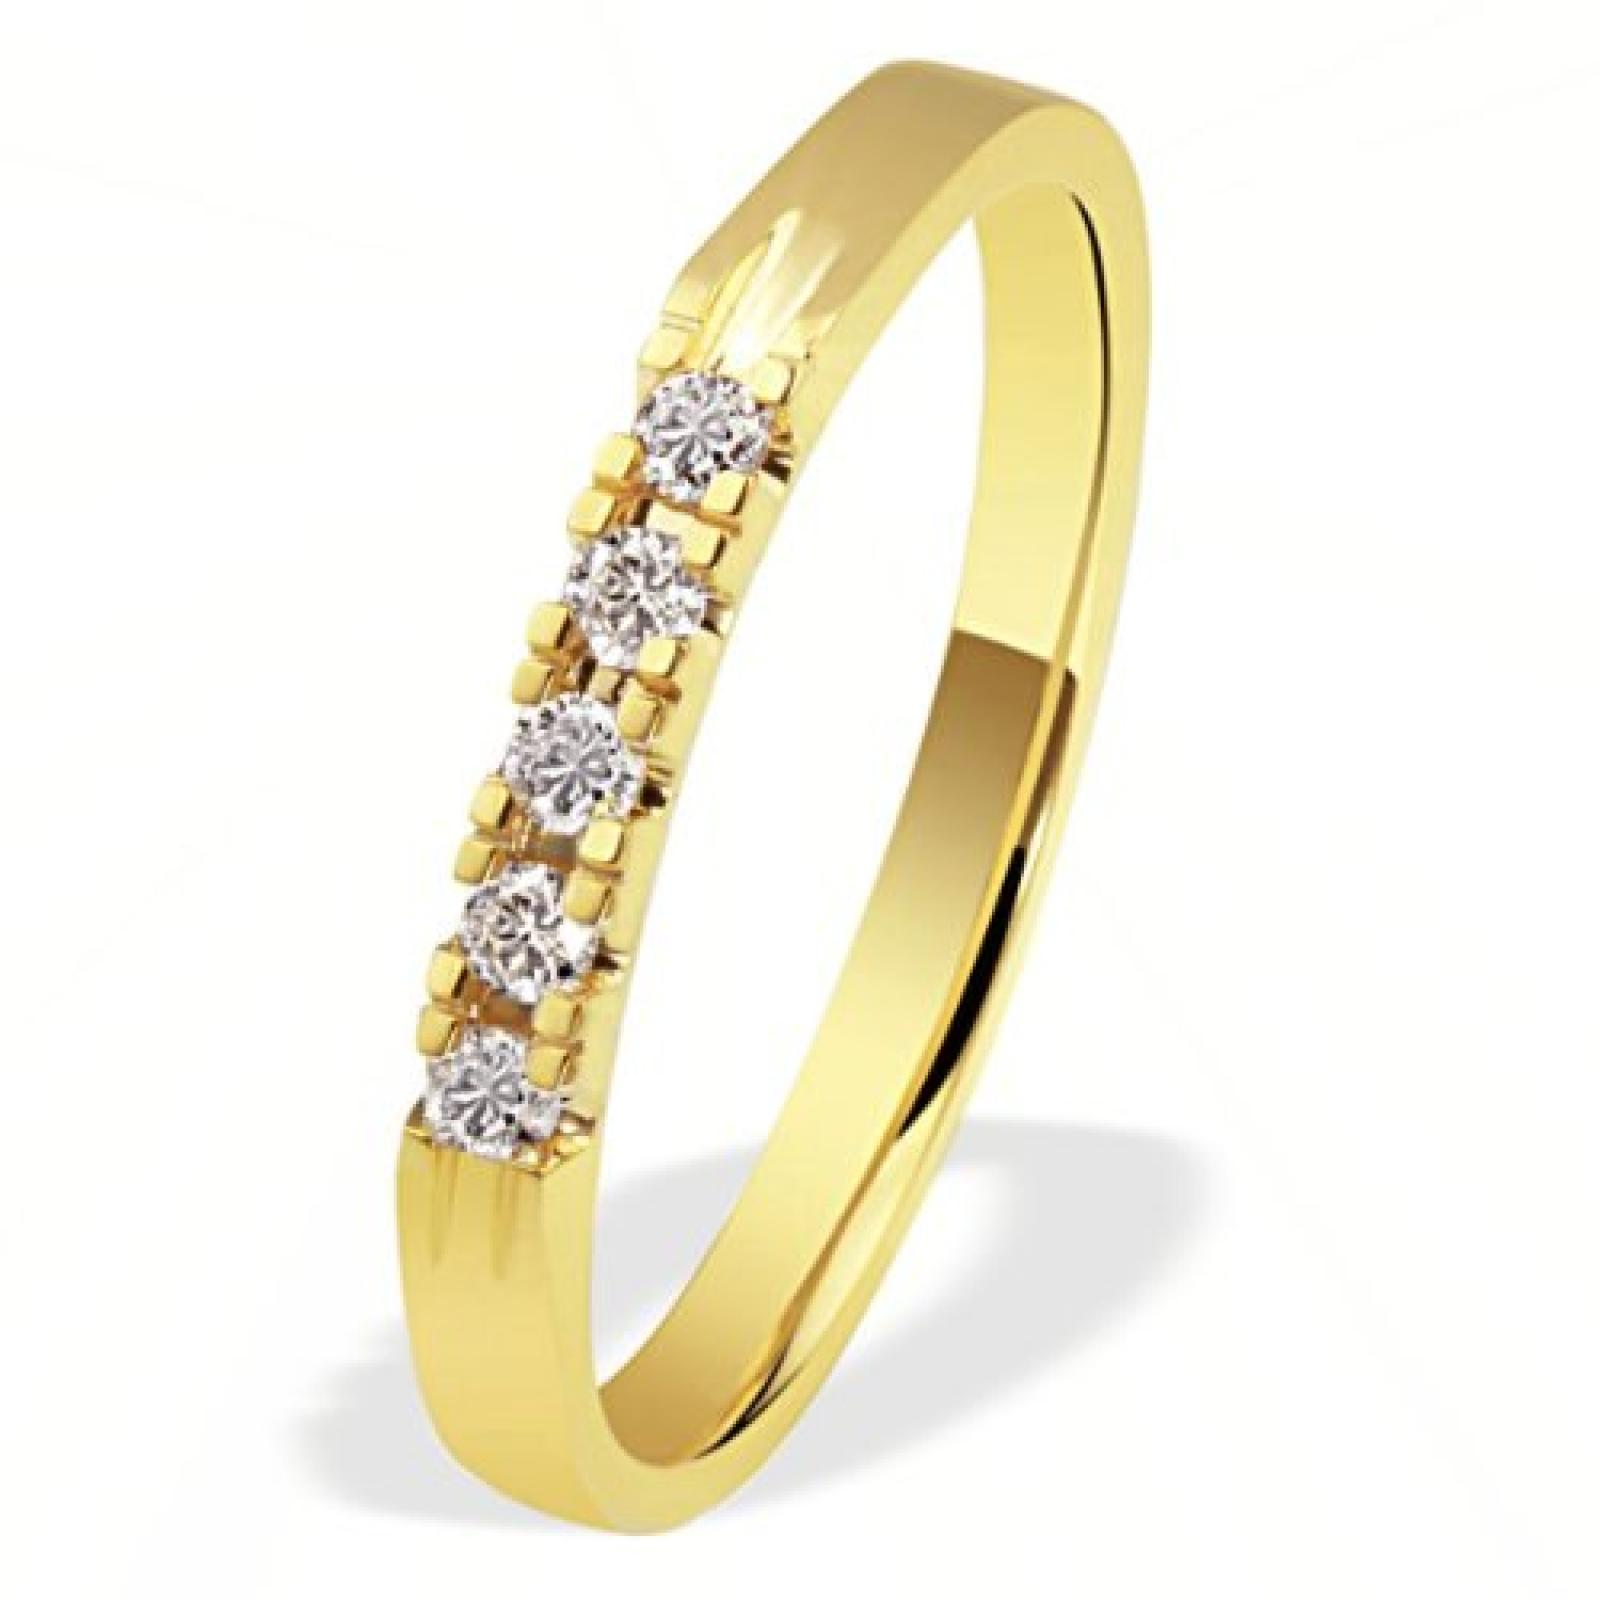 Goldmaid Ring 585 Gelbgold 5 Brillanten 0,15ct Memoire Me